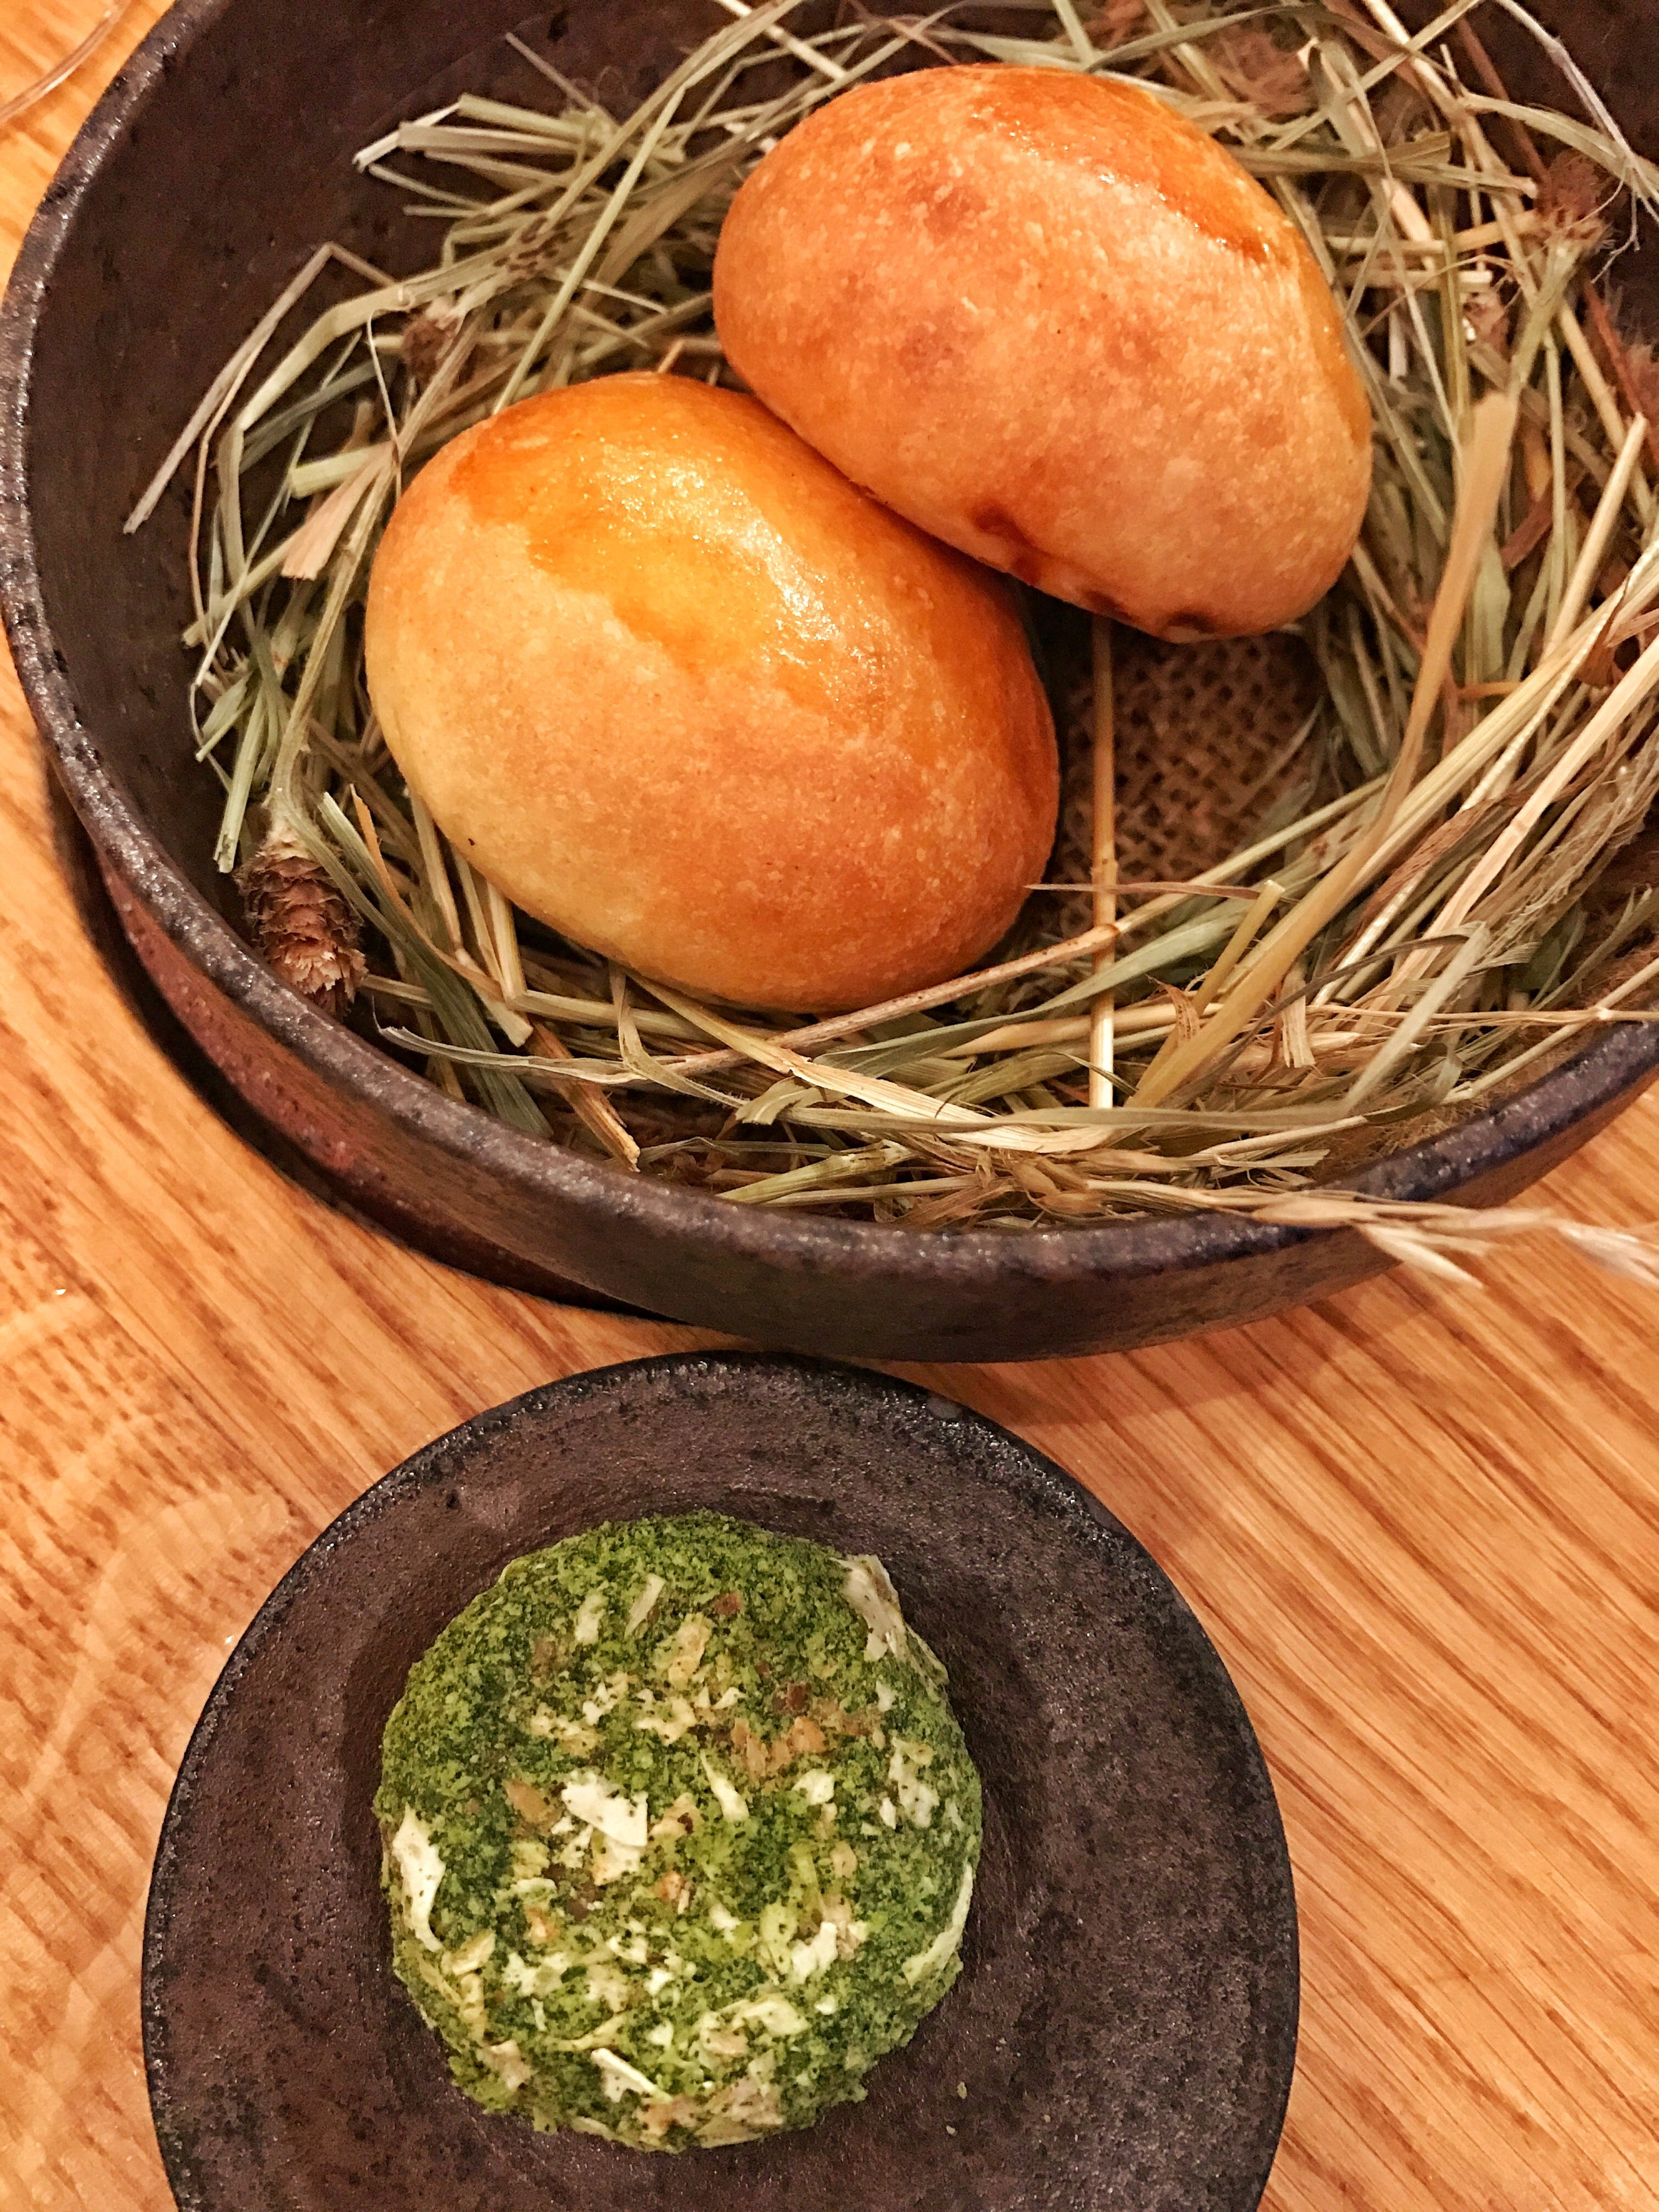 Brioche buns with smoked herb butter- Let's just just leave it at the French know how to make bread. The buns with French butter were incredible.